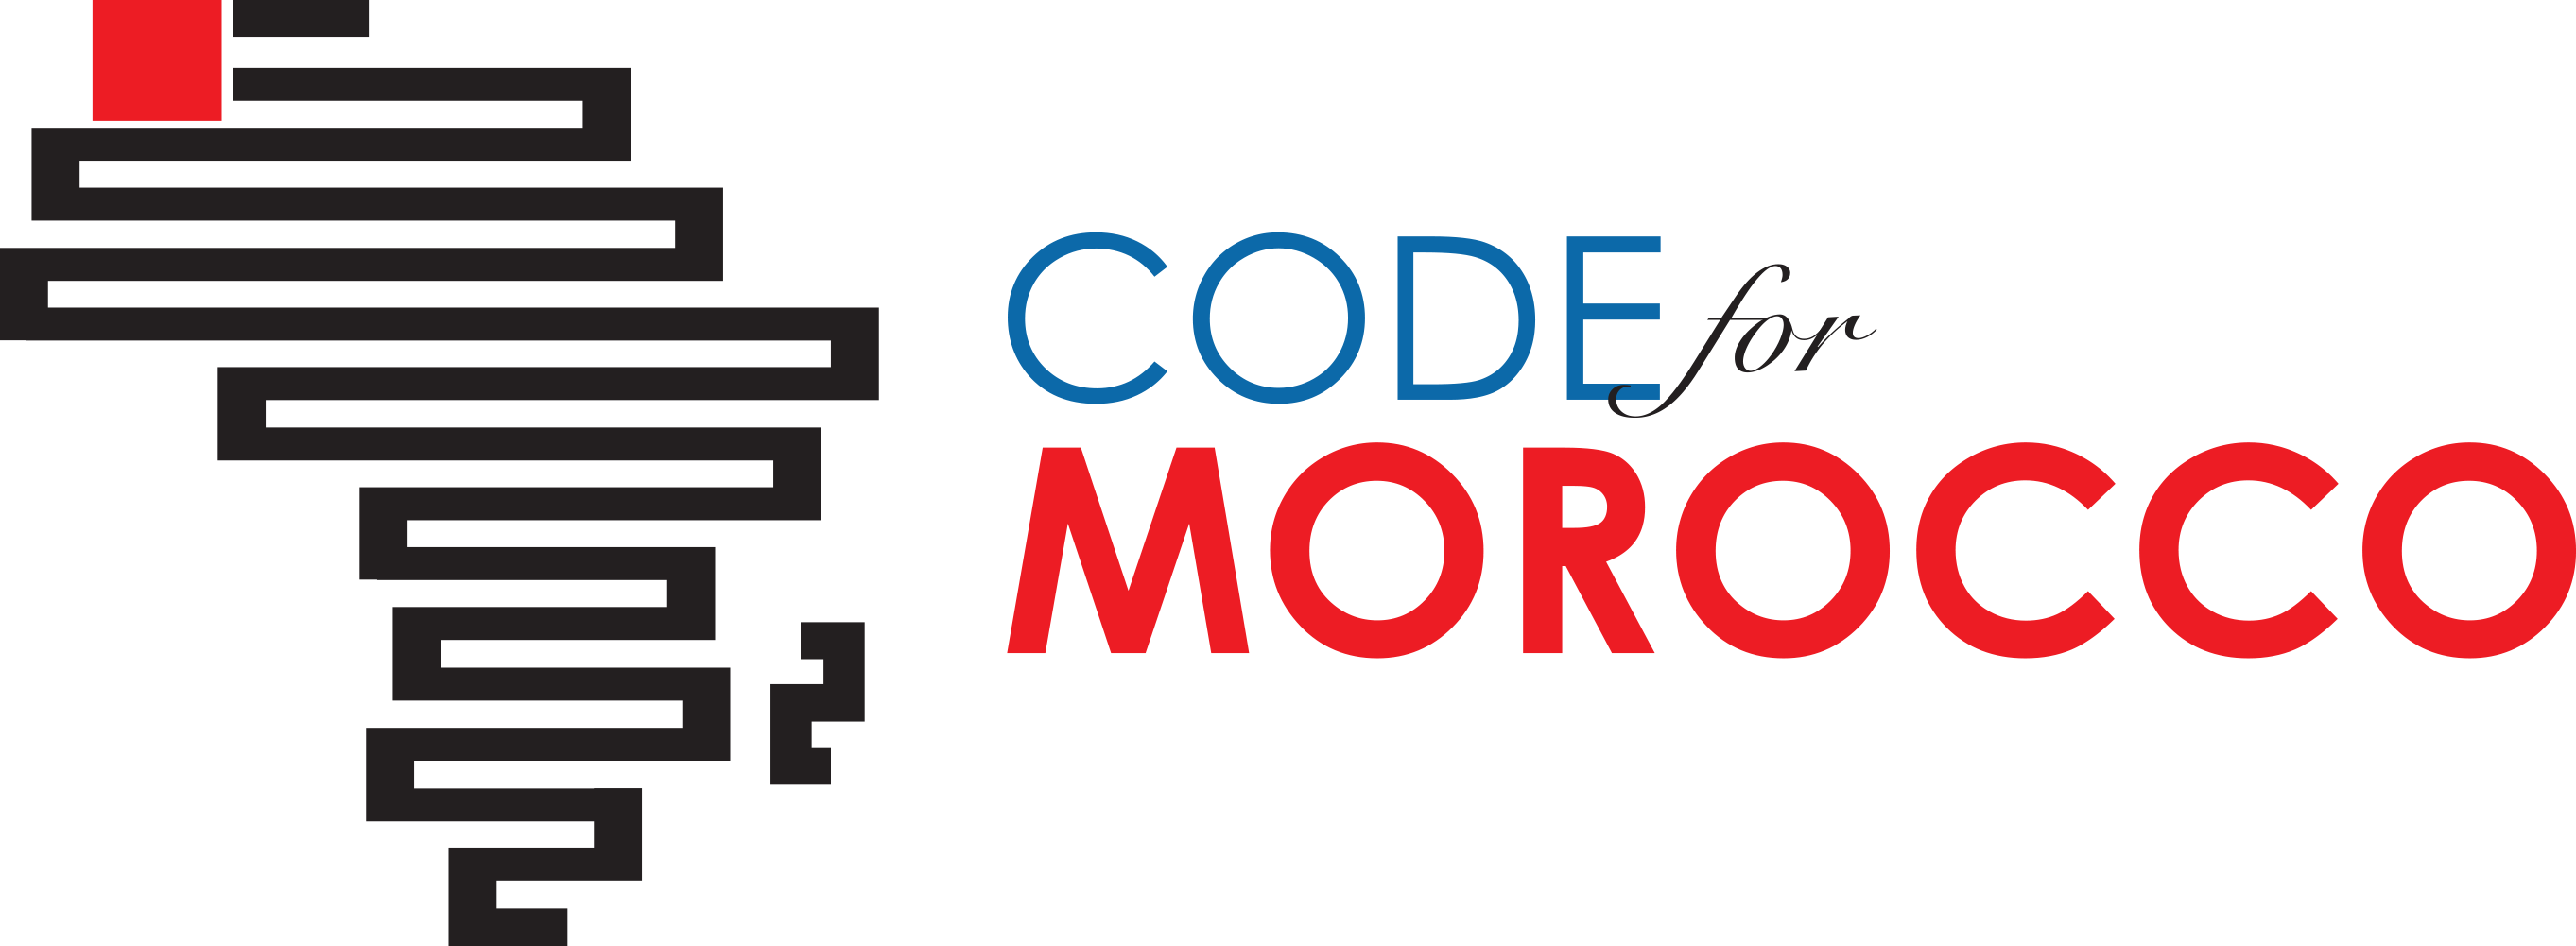 Code for Morocco